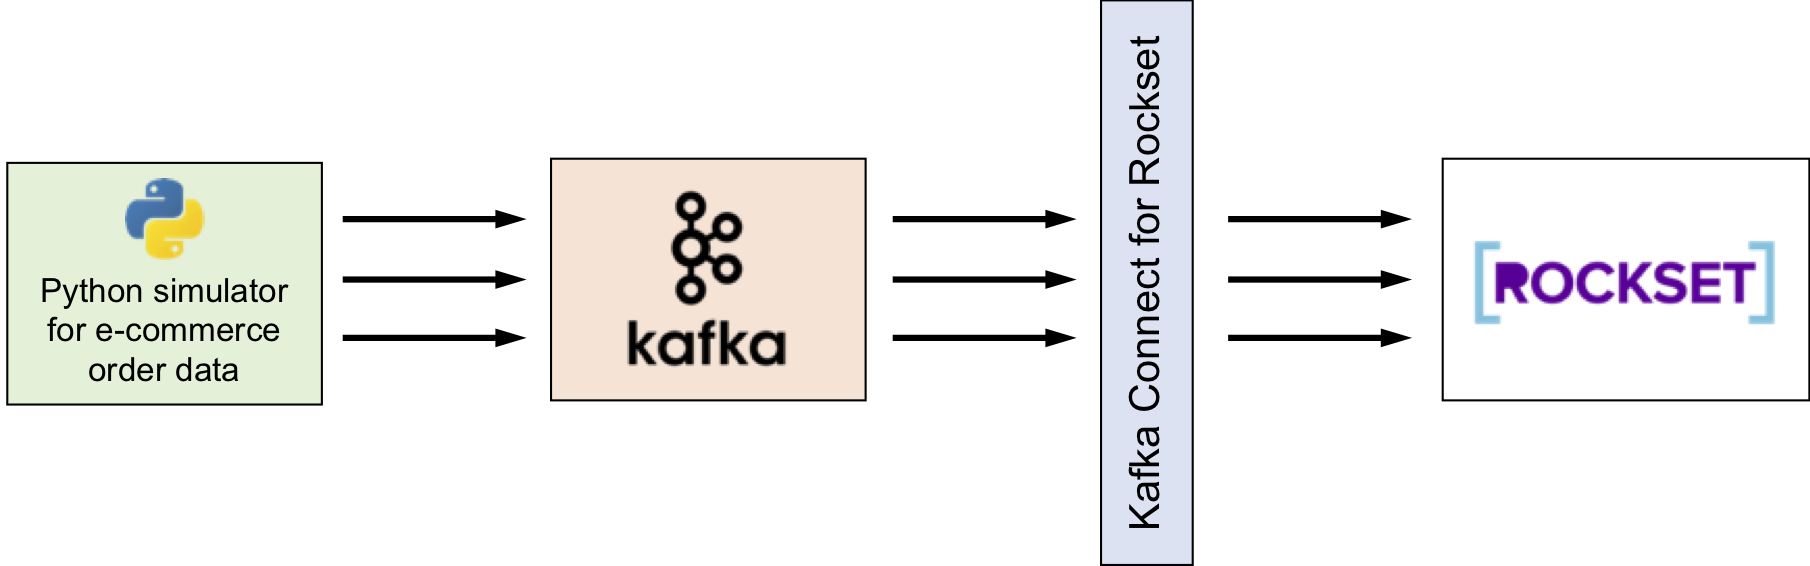 Real-Time Analytics Using SQL on Streaming Data with Apache Kafka